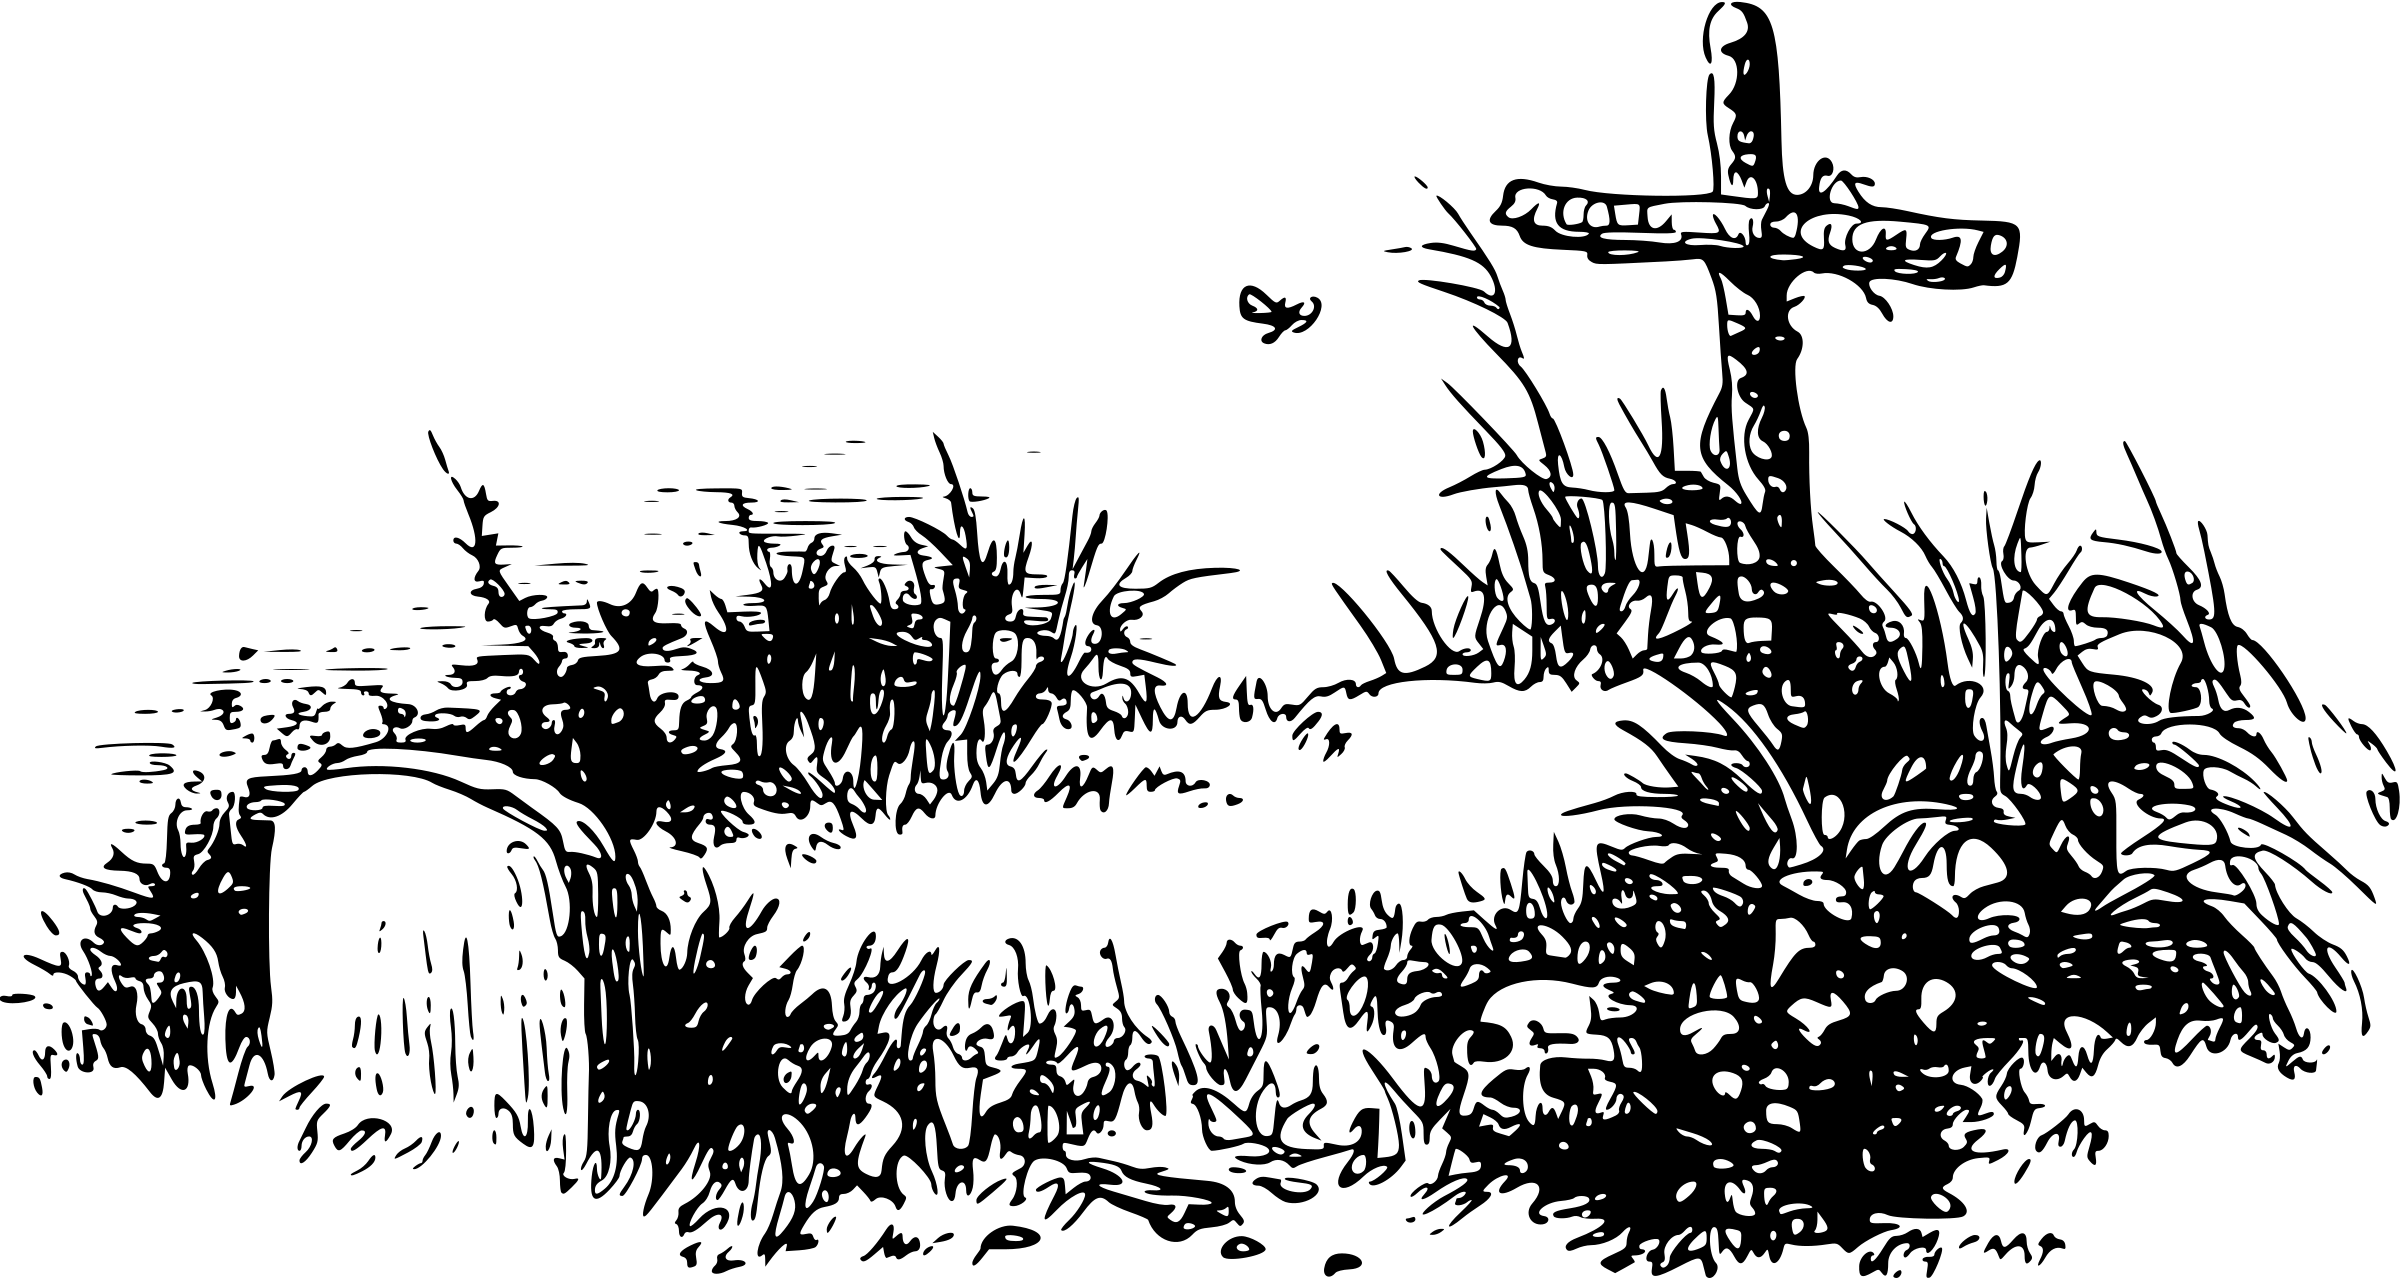 Cenetery clipart #1, Download drawings